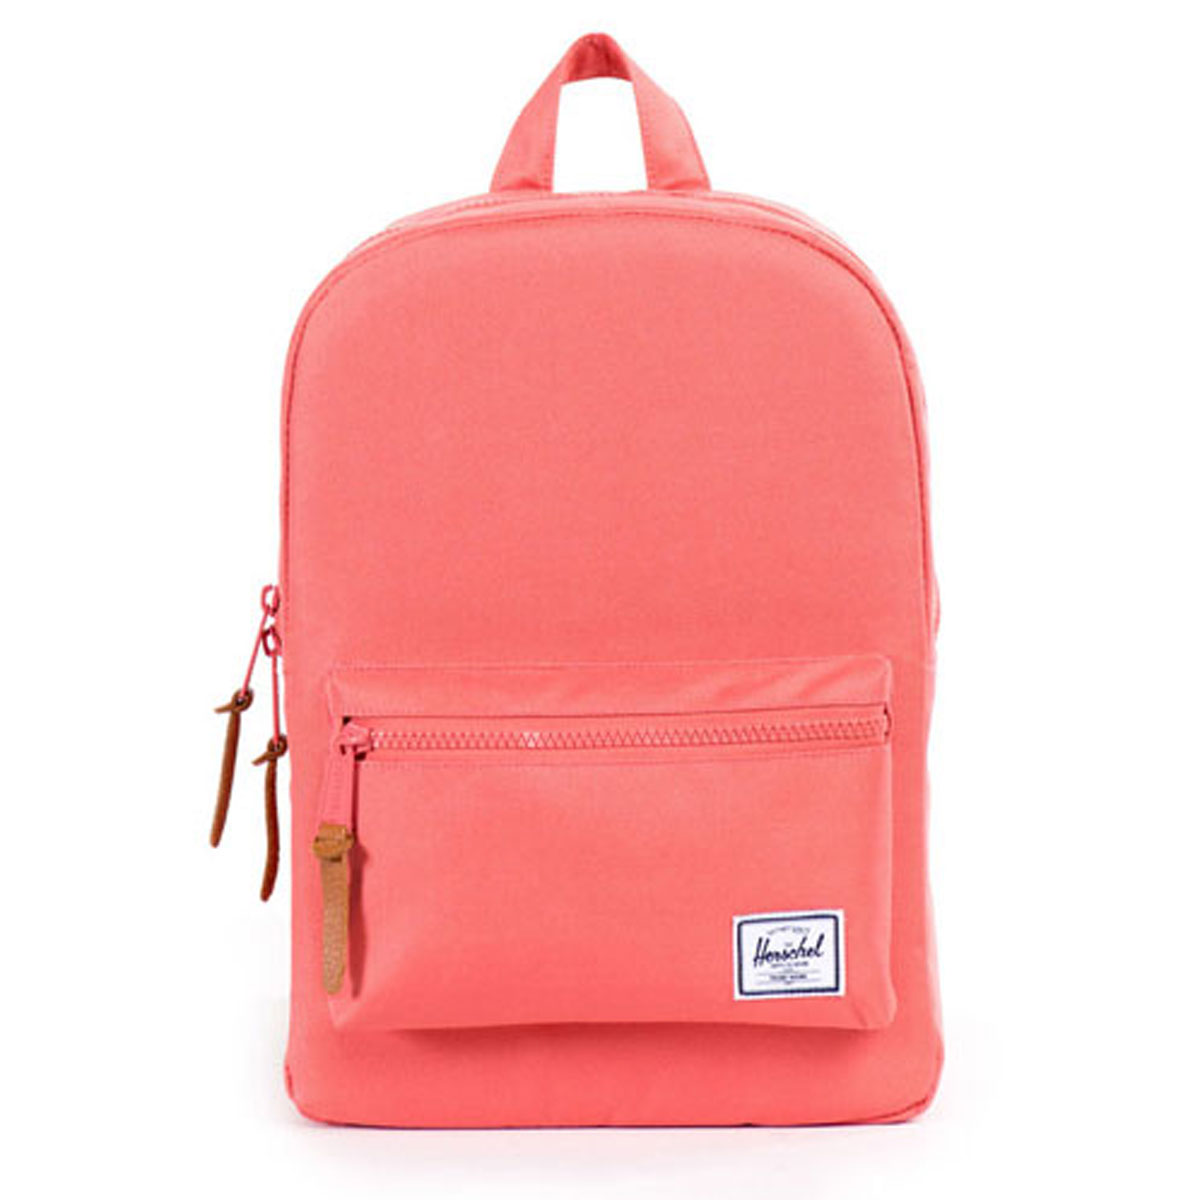 ハーシェル Herschel バッグ Settlement Kids Kids 10074-00583-OS Flamingo Rubber